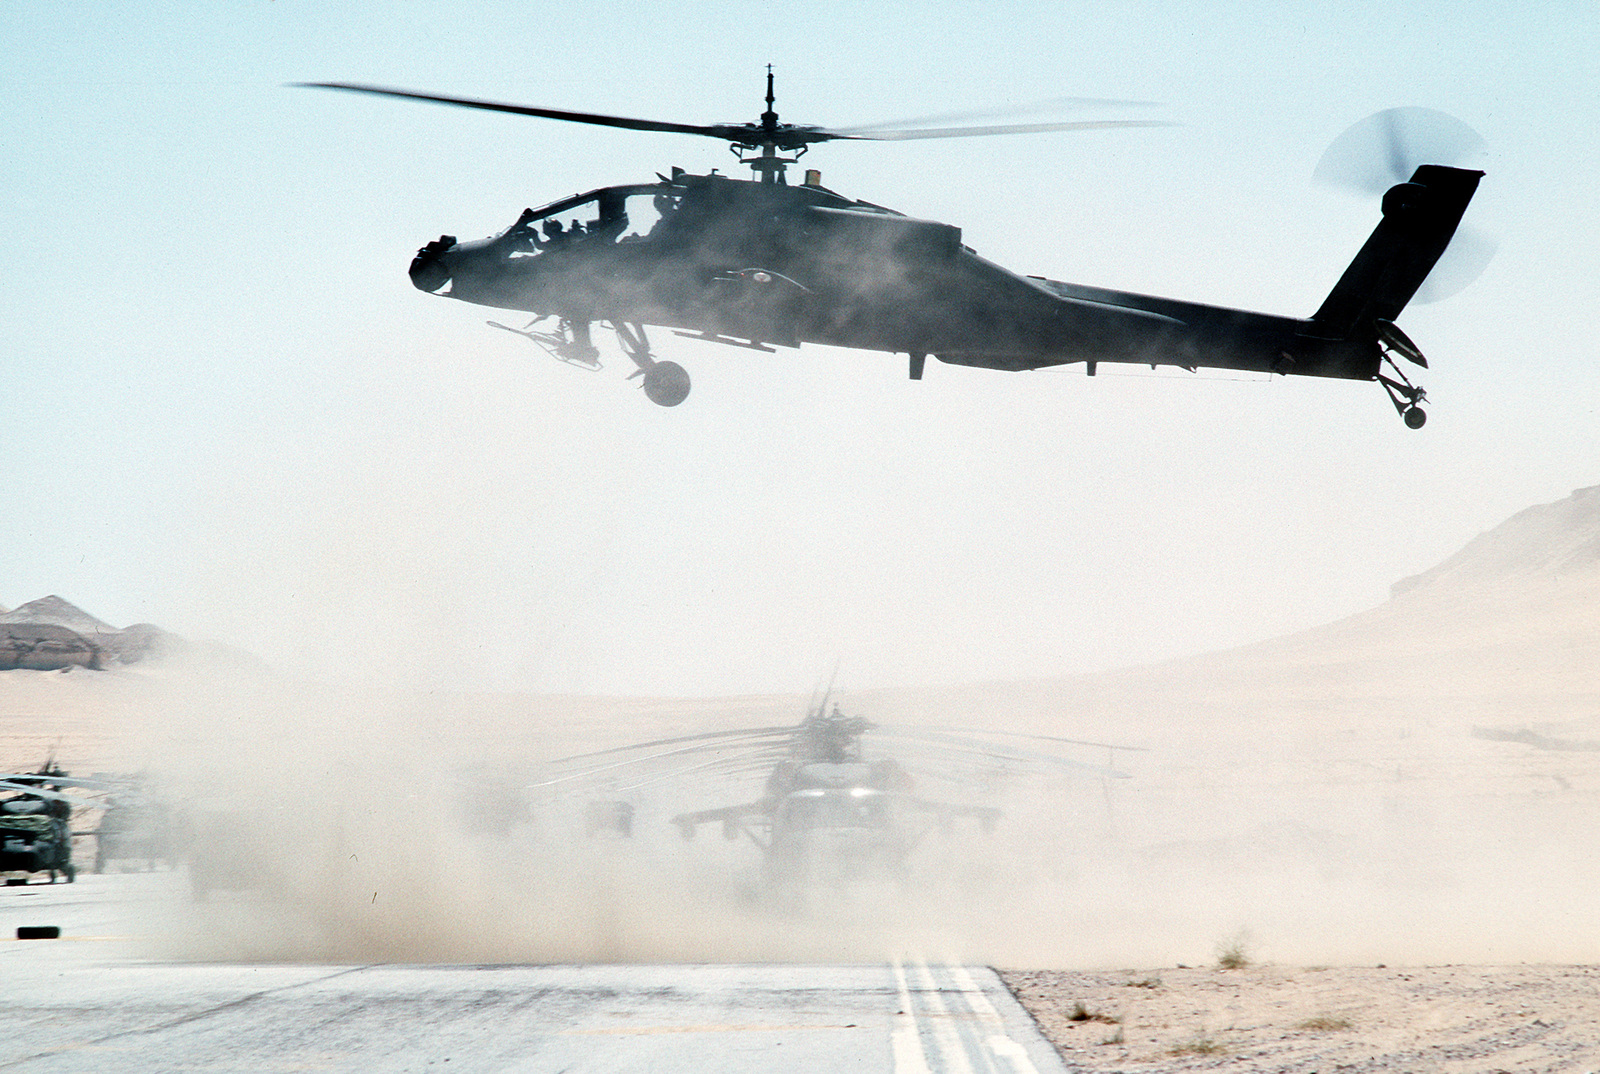 An AH-64 Apache helicopter lifts off as the 82nd Aviation Brigade relocates in the desert during Operation Desert Shield.